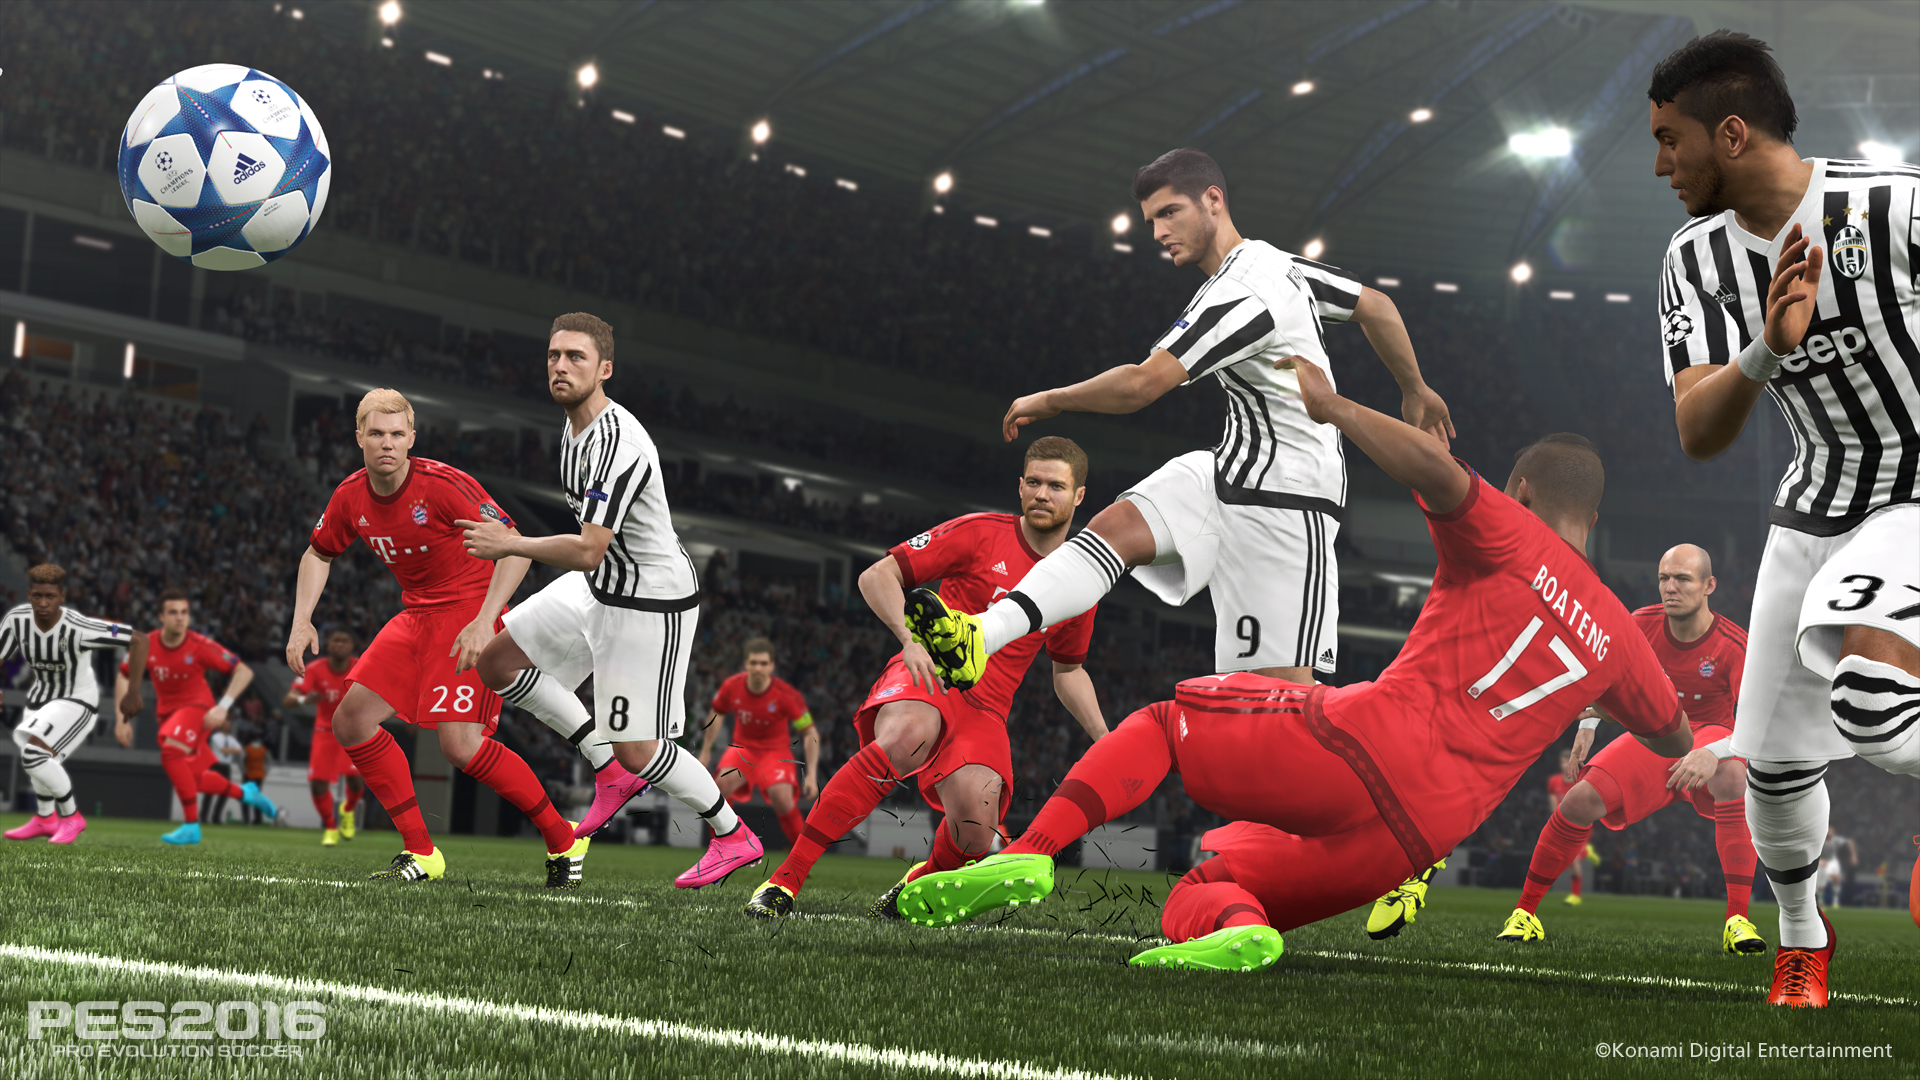 PES 2016 (PS4) - goal in